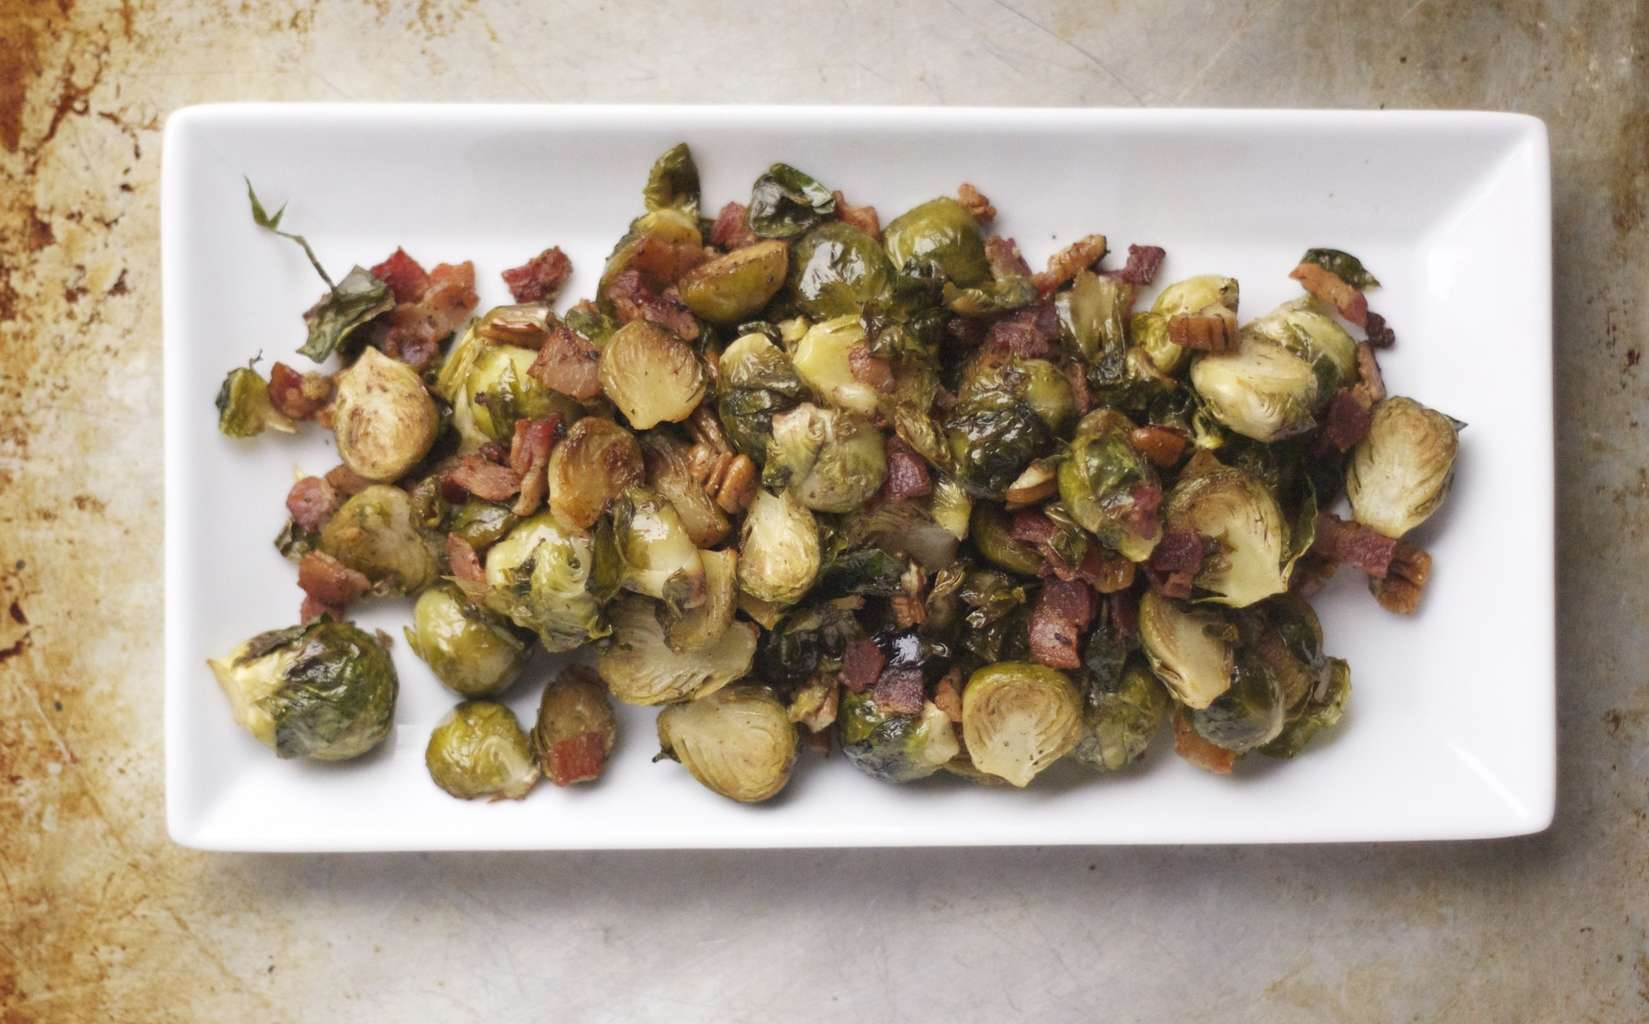 Brussel Sprouts with Bacon and Walnuts